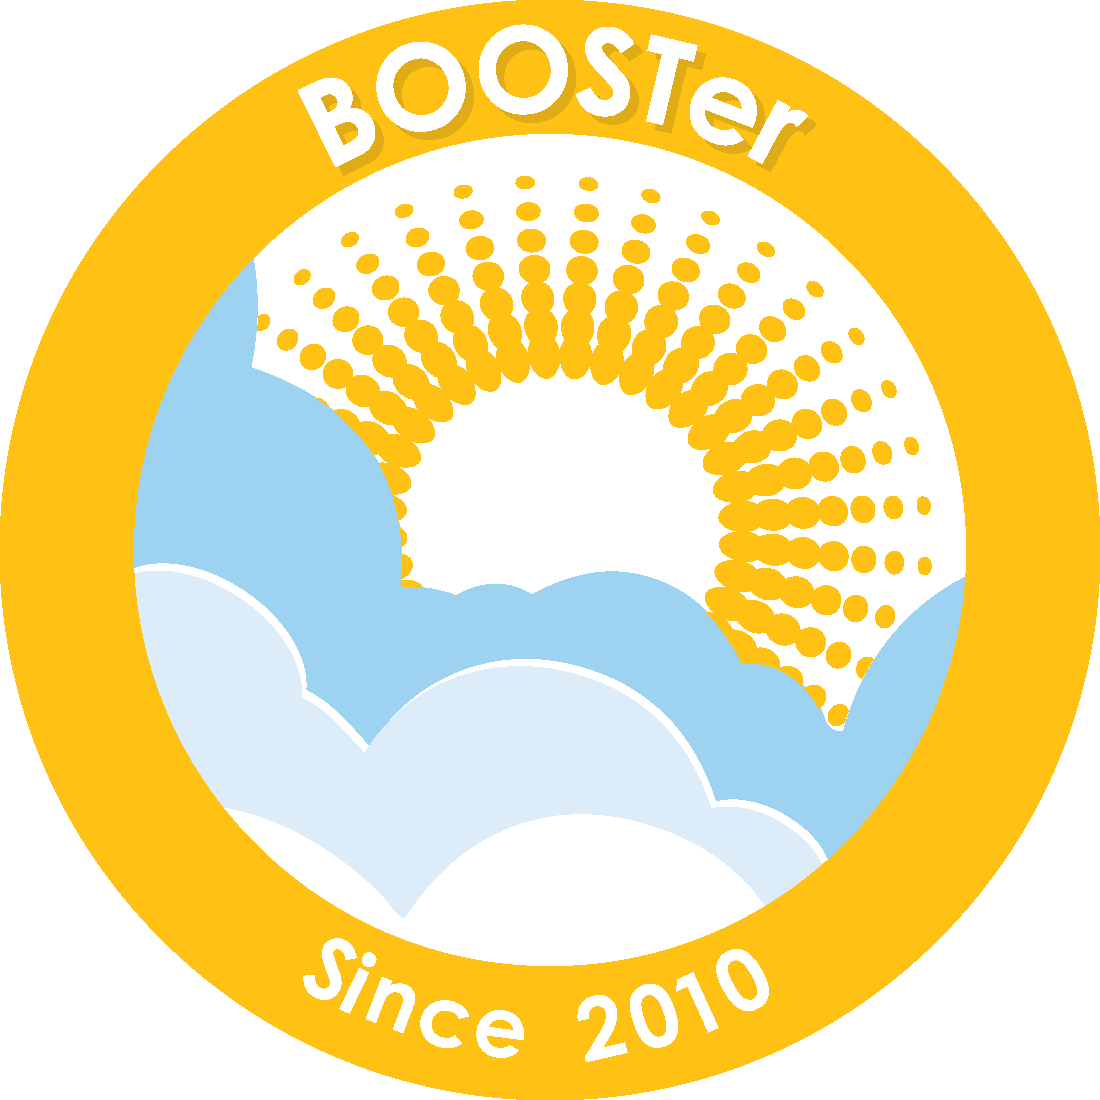 2010 BOOSTer Since badge